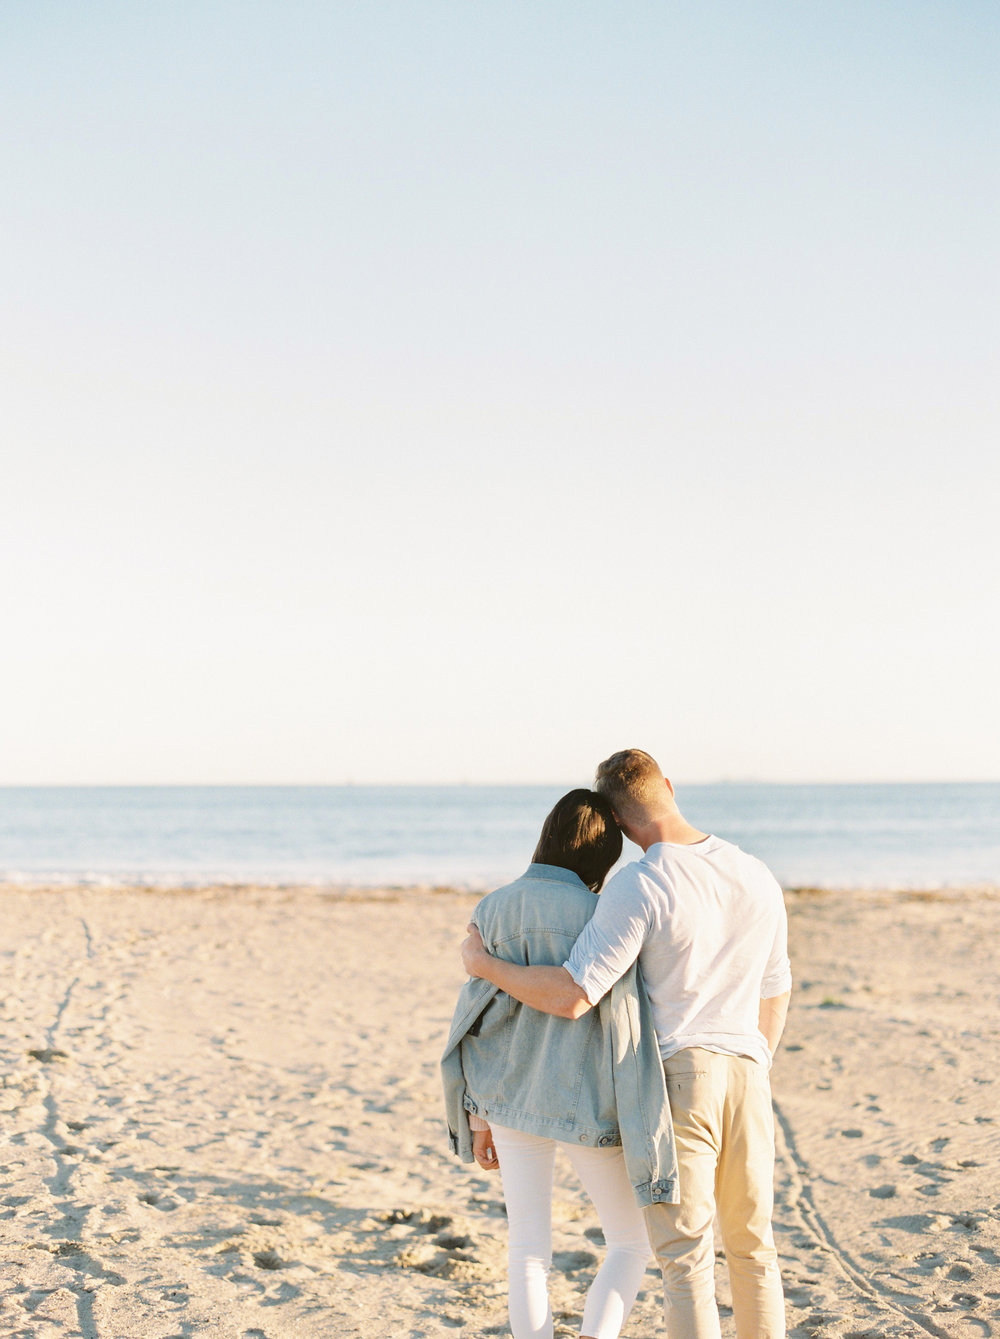 California Engagement Wedding Lifestyle Brand Photographer